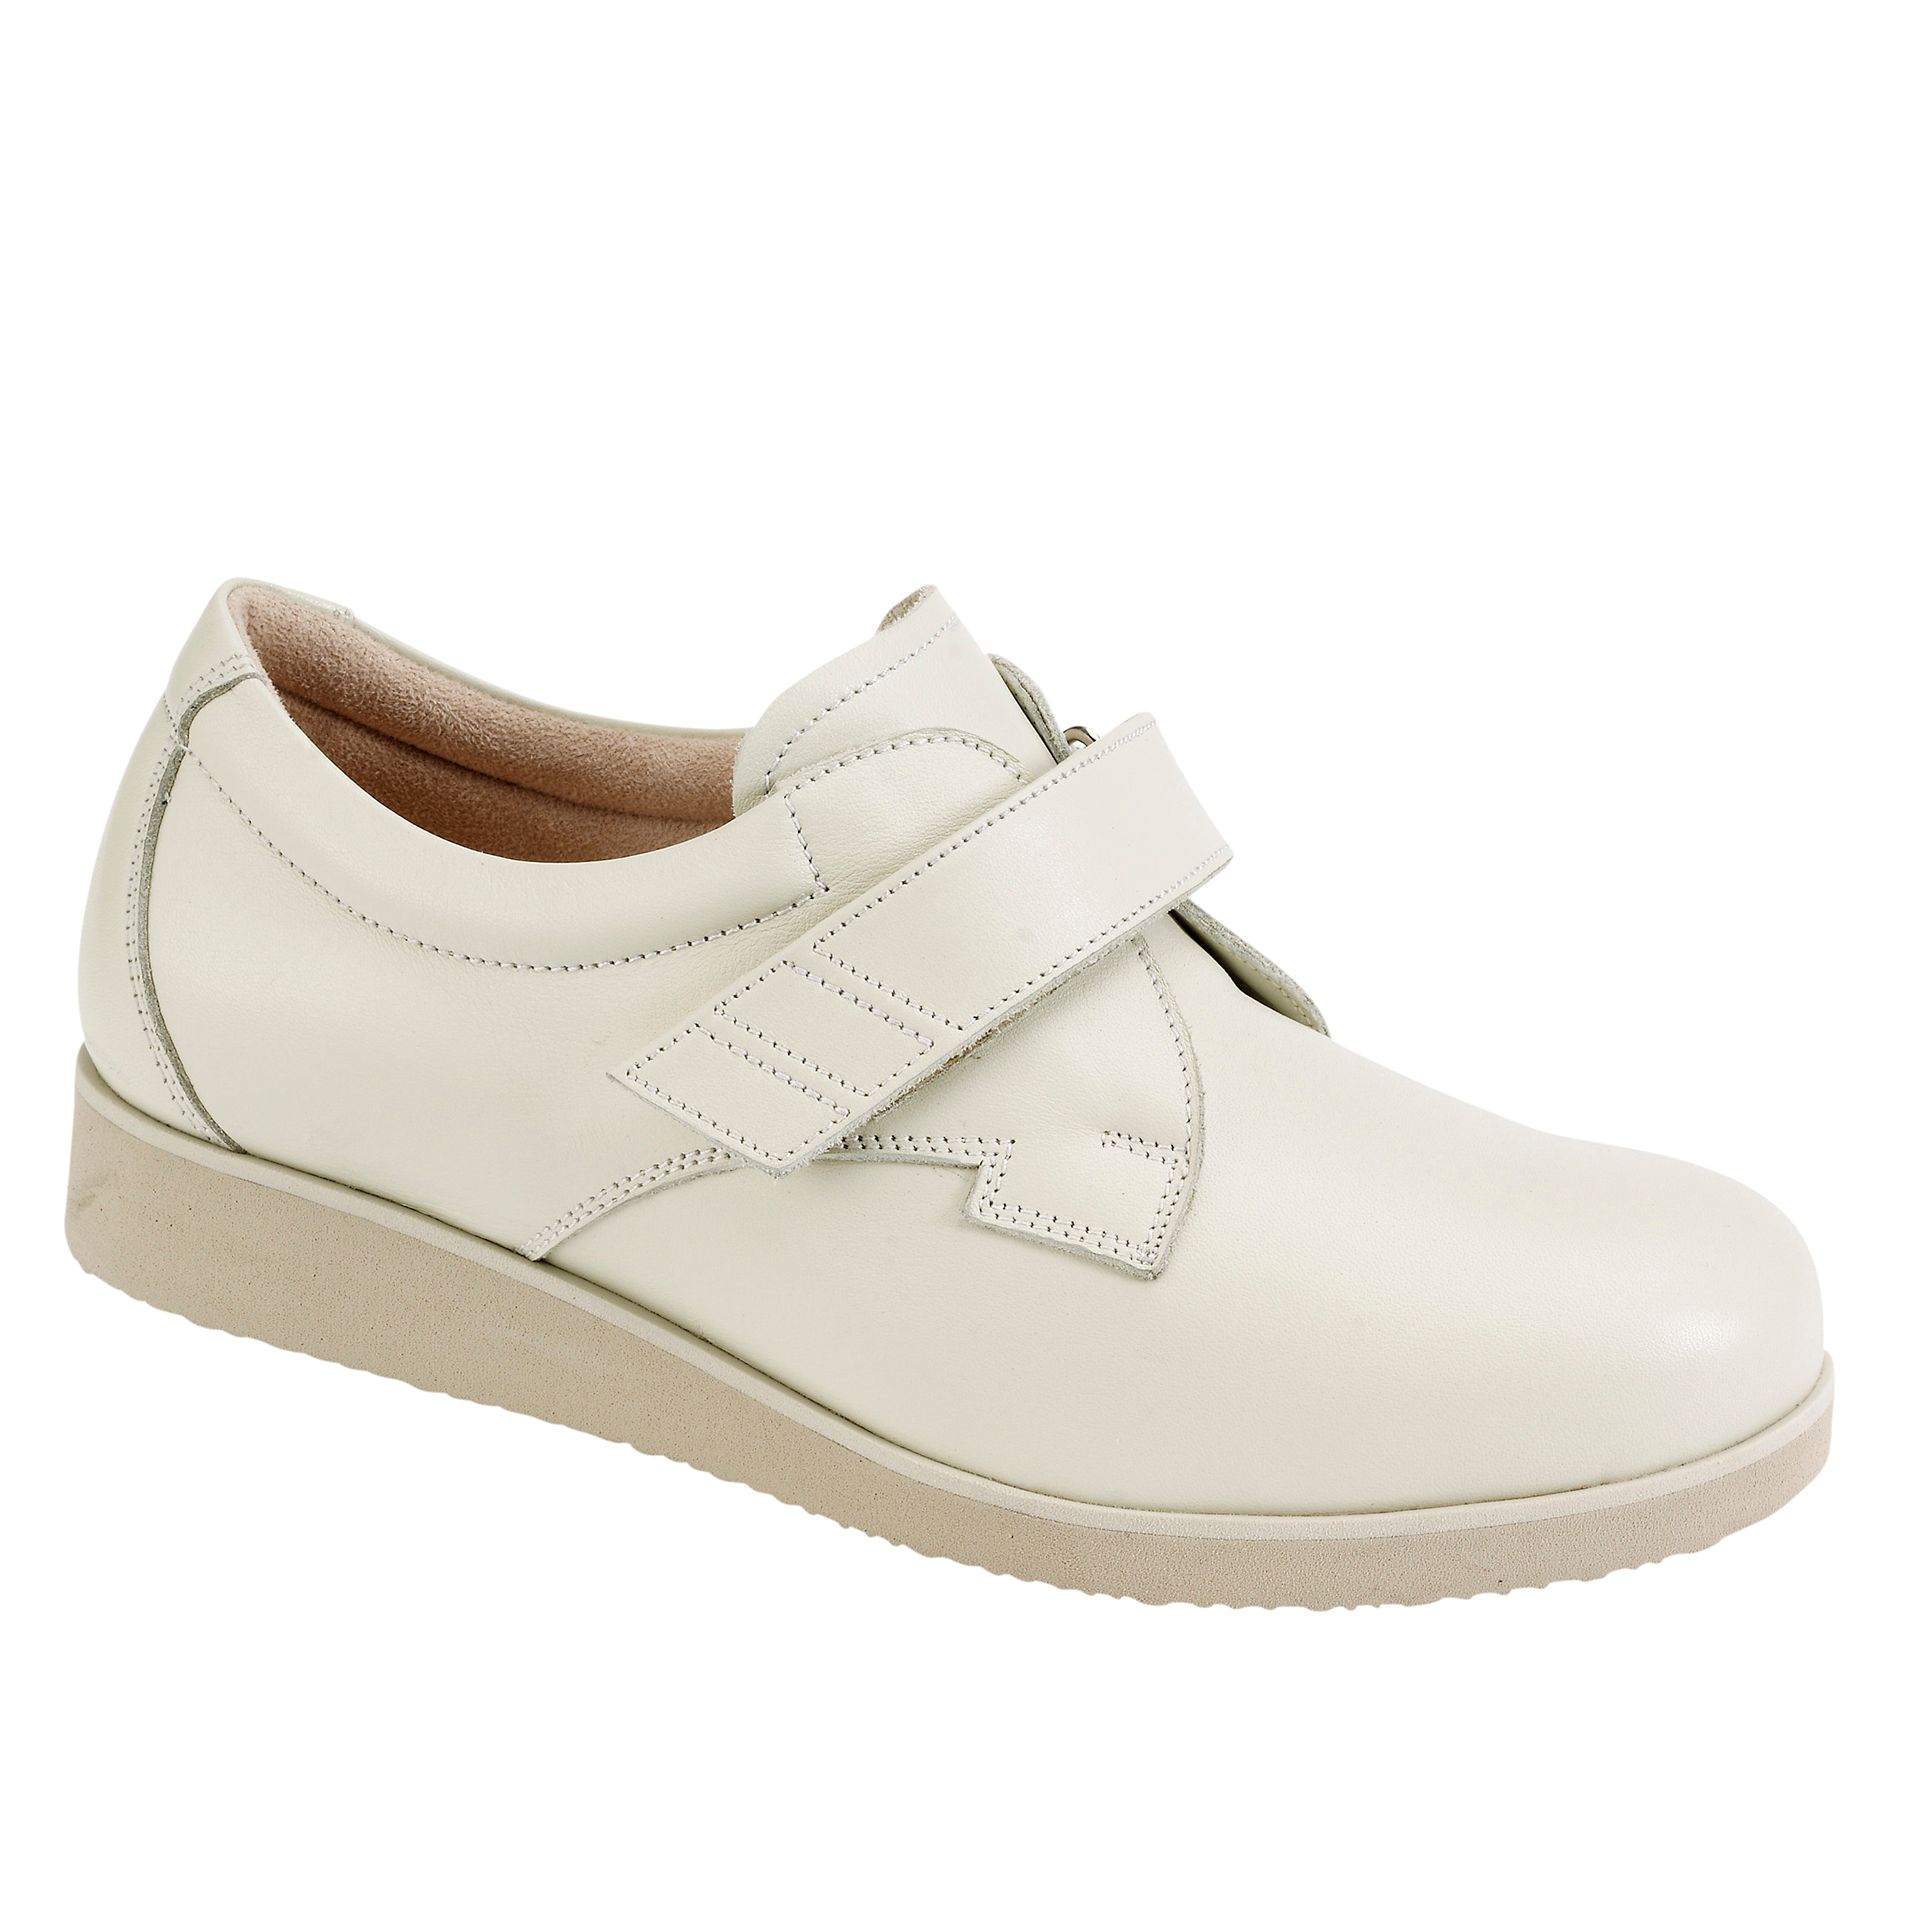 Womens Diabetic Safety Shoes